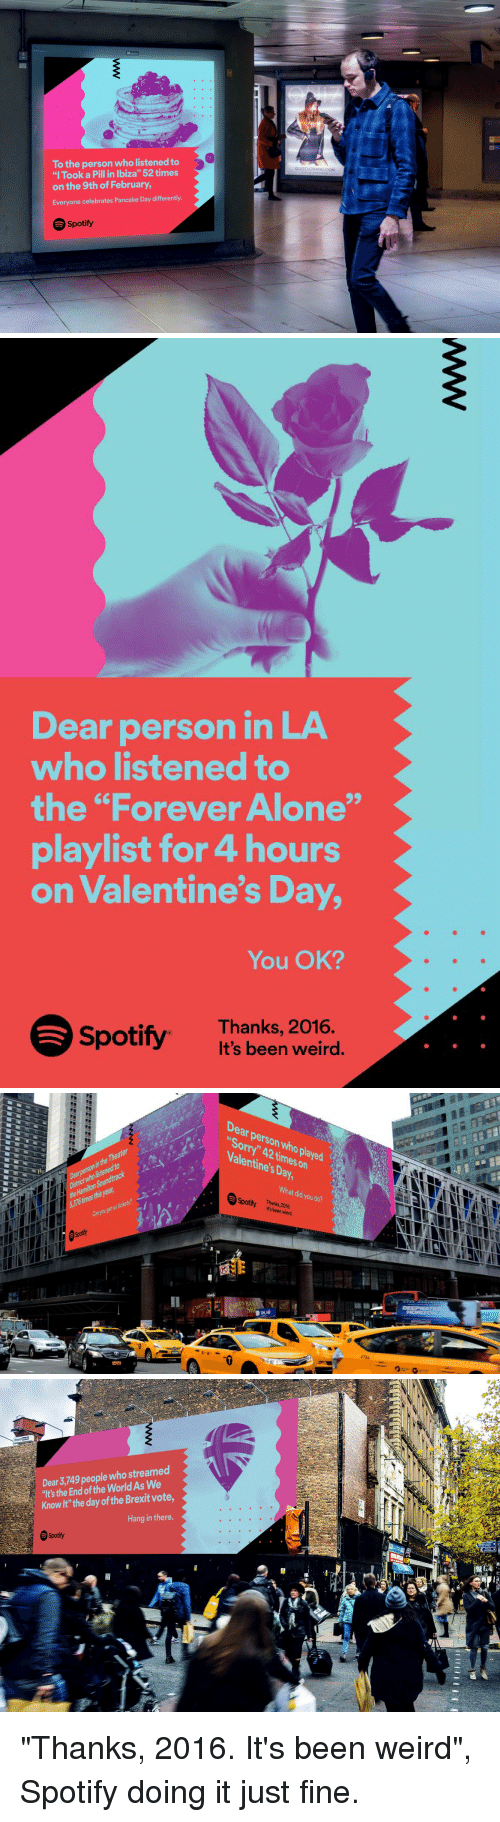 """pancake day: To the person who listened to  """"I Took a Pill in Ibiza"""" 52 times  on the 9th of February,  Everyone celebrates Pancake Day differently.  Spotify  QUIZCLOTHING COM   Dear person in LA  who listened to  the """"Forever Alone""""  playlist for 4 hours  on Valentine's Day,  You OK?  Spotify Thanks, 2016.  It's been weird.   Soundtrack  Kon  Dear person who Valentines Day,  on  What you did do?  Spotify Thanks 2016.  SH   Dear 3,749 people who streamed  """"It's the End the World As We  of Knowlt"""" the day of the Brexit vote  Hang in there  Spotify  A """"Thanks, 2016. It's been weird"""", Spotify doing it just fine."""